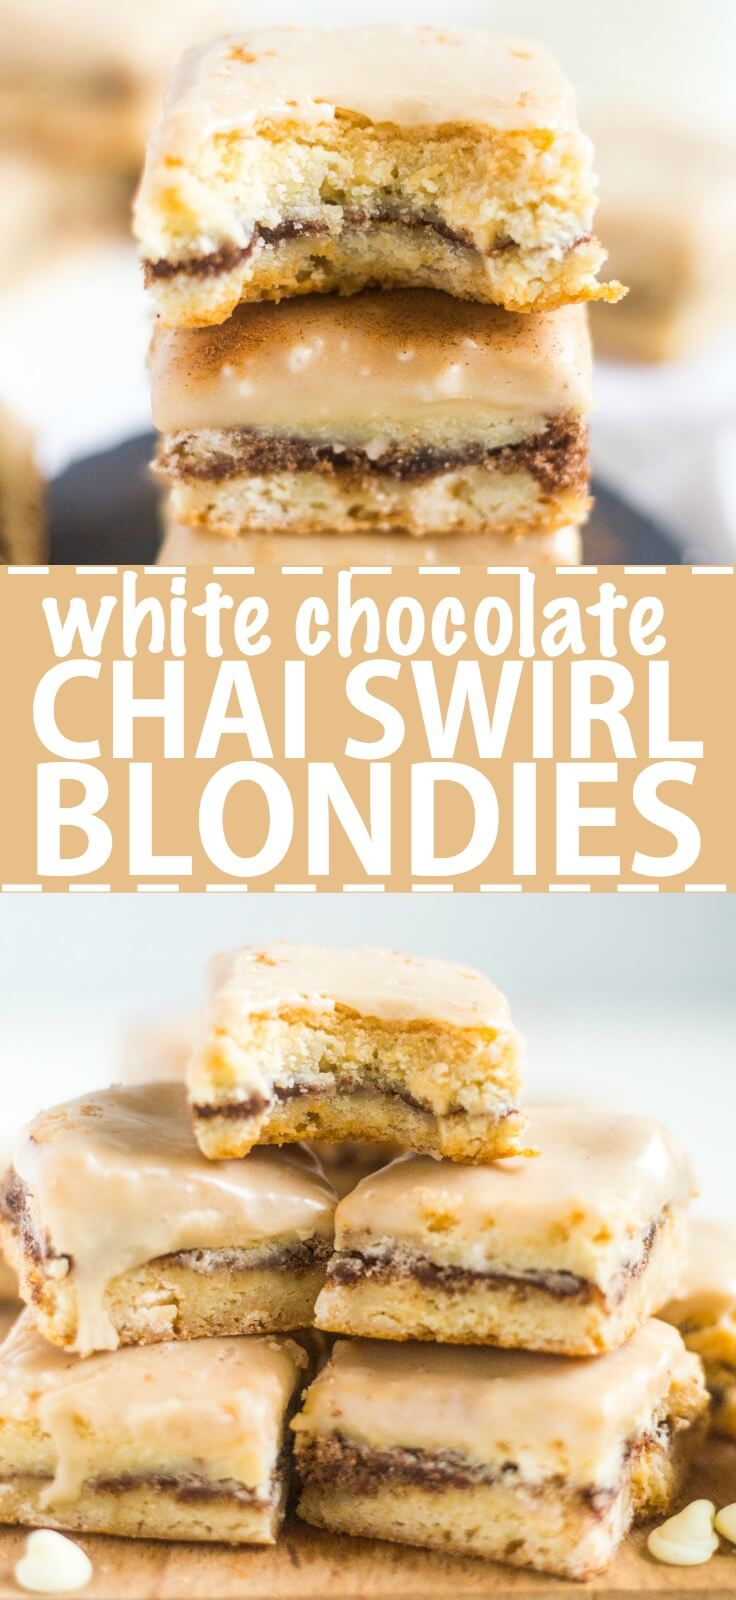 blondie recipe white chocolate